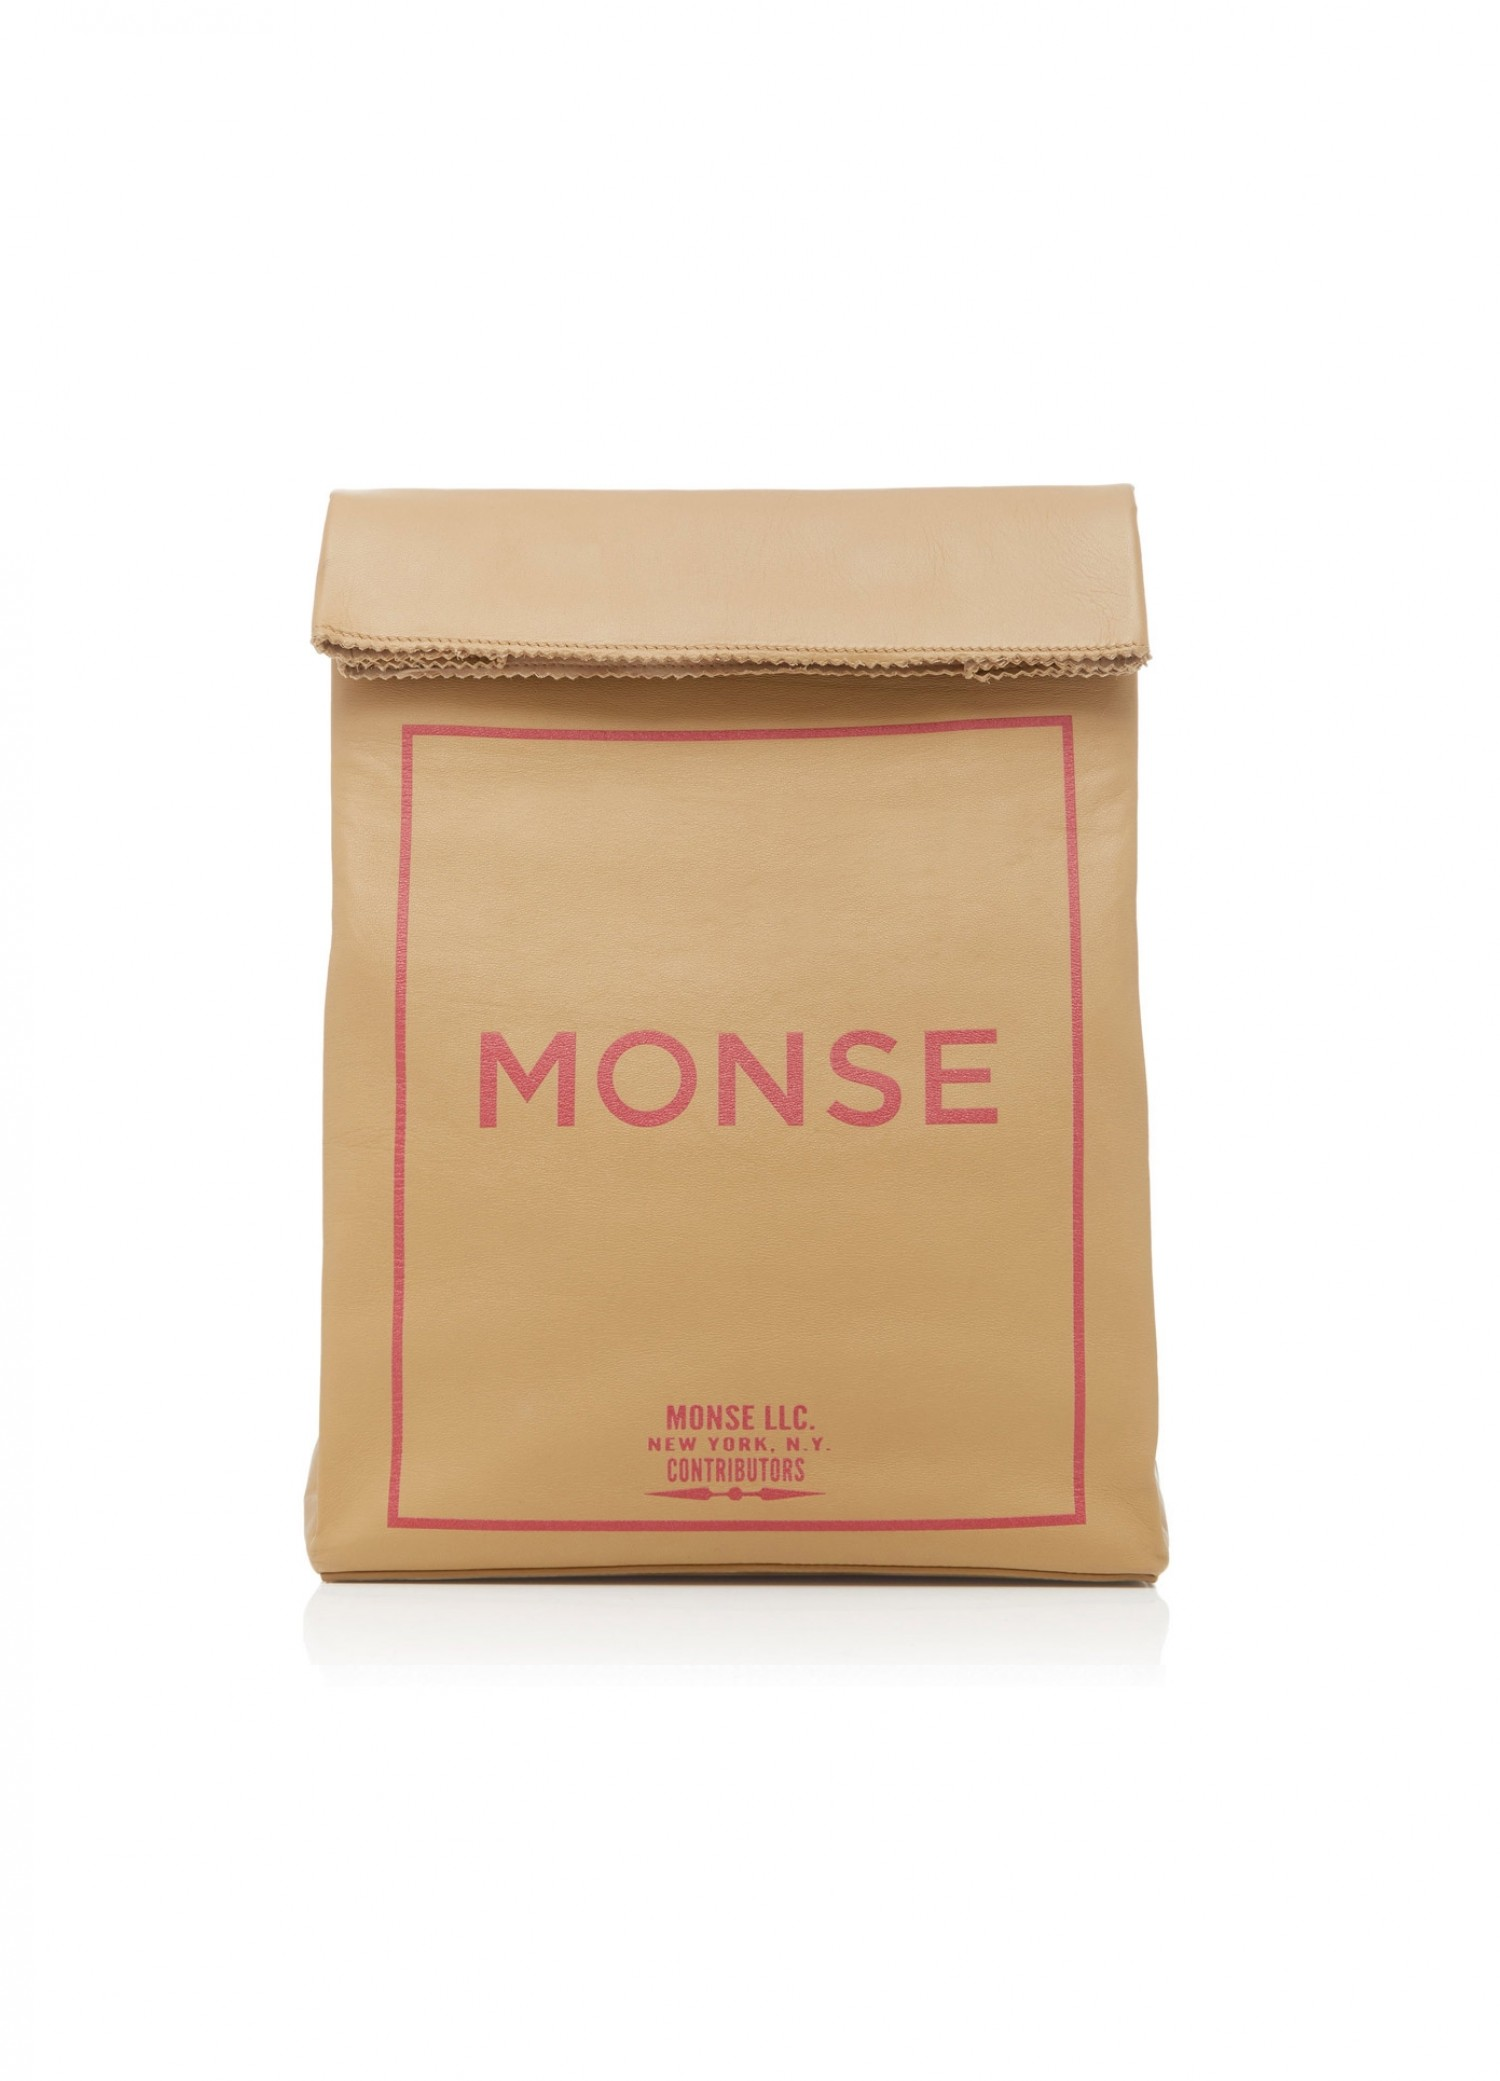 MONSE Leather Paper Bag